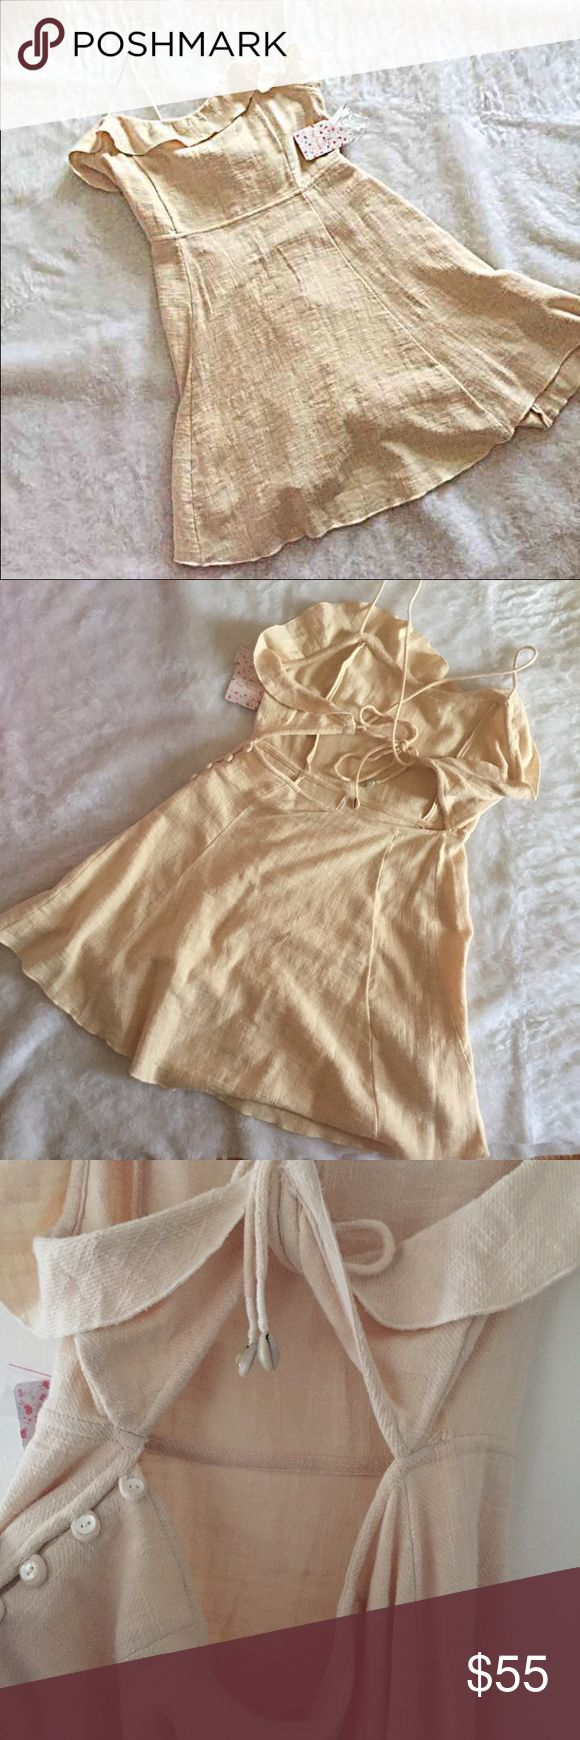 NWT free people medium beige mini dress Very nice style with shell details new with tags Free People Dresses Mini